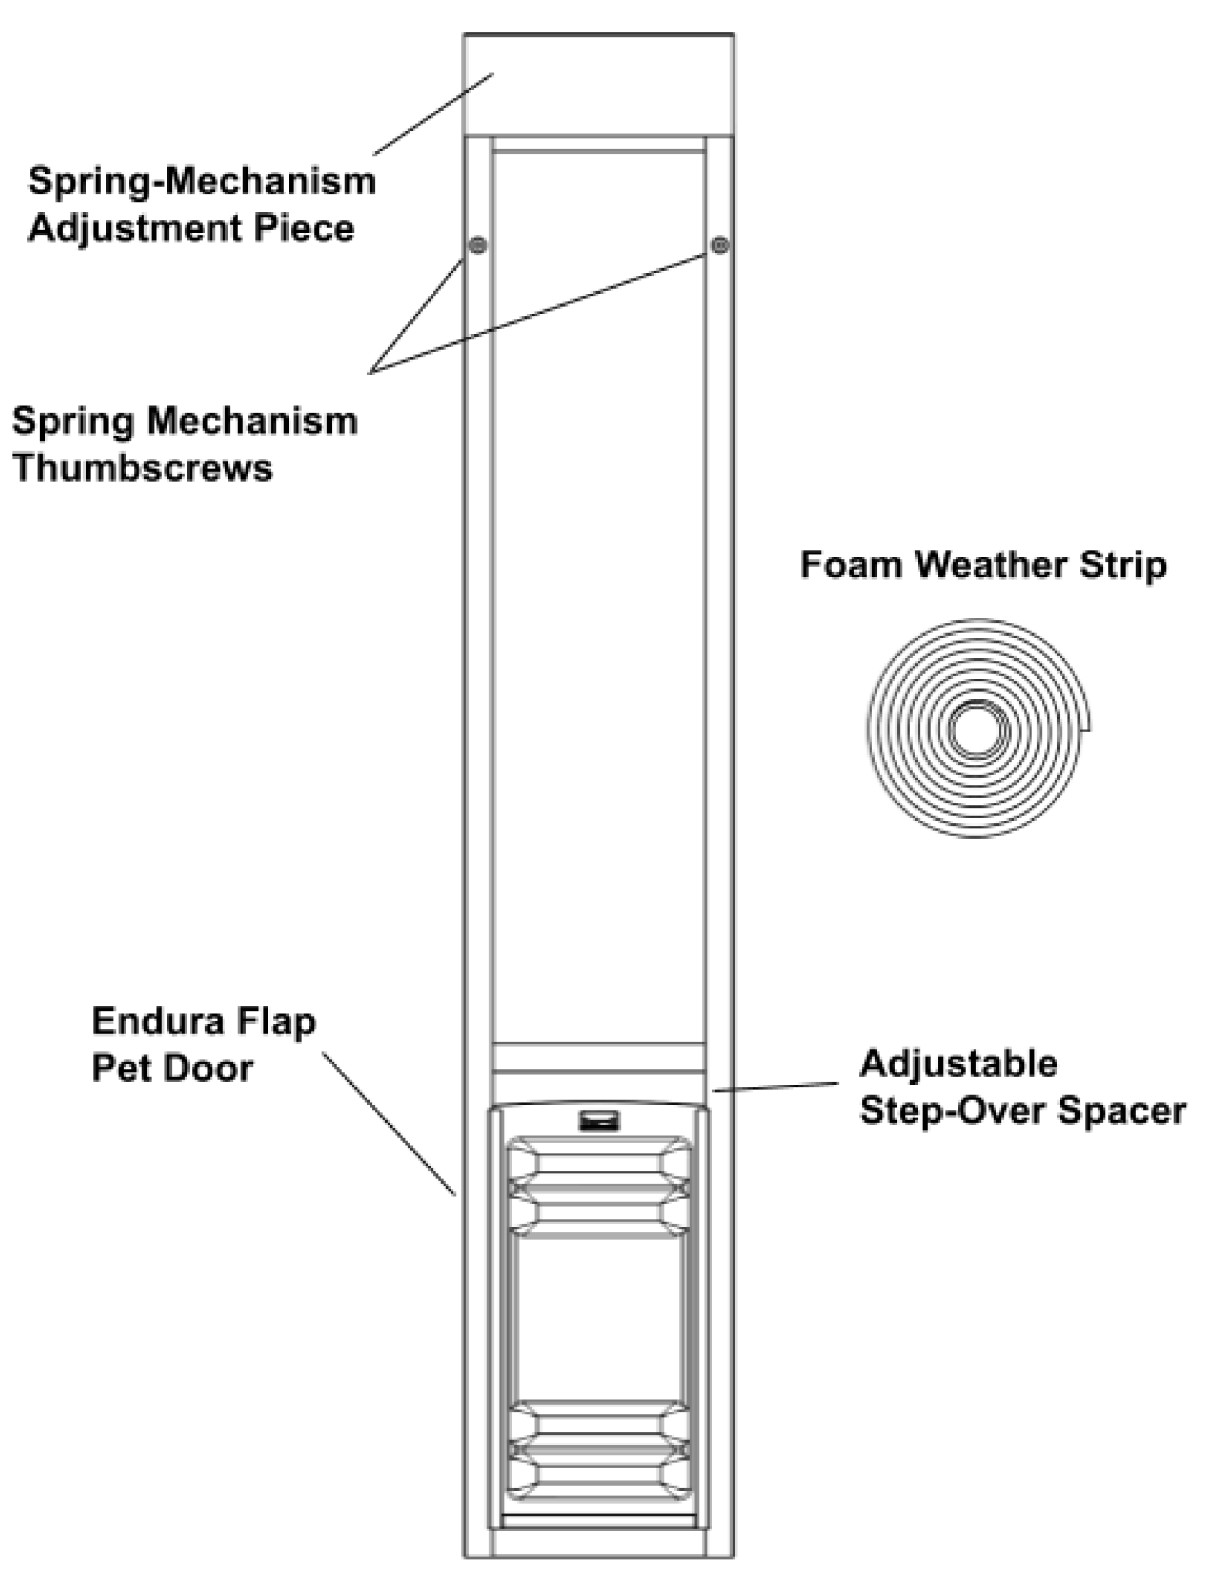 diagram of endura flap thermo panel and parts